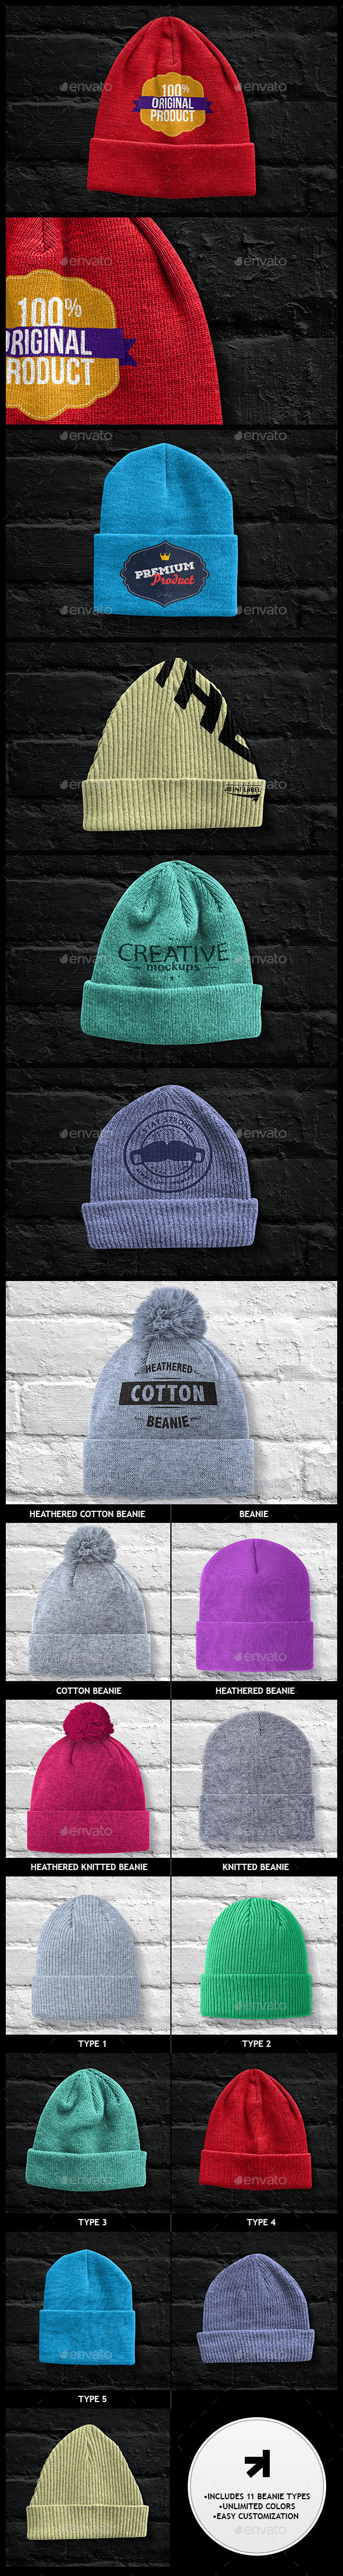 GraphicRiver Beanies Pack Mock Up 9358609